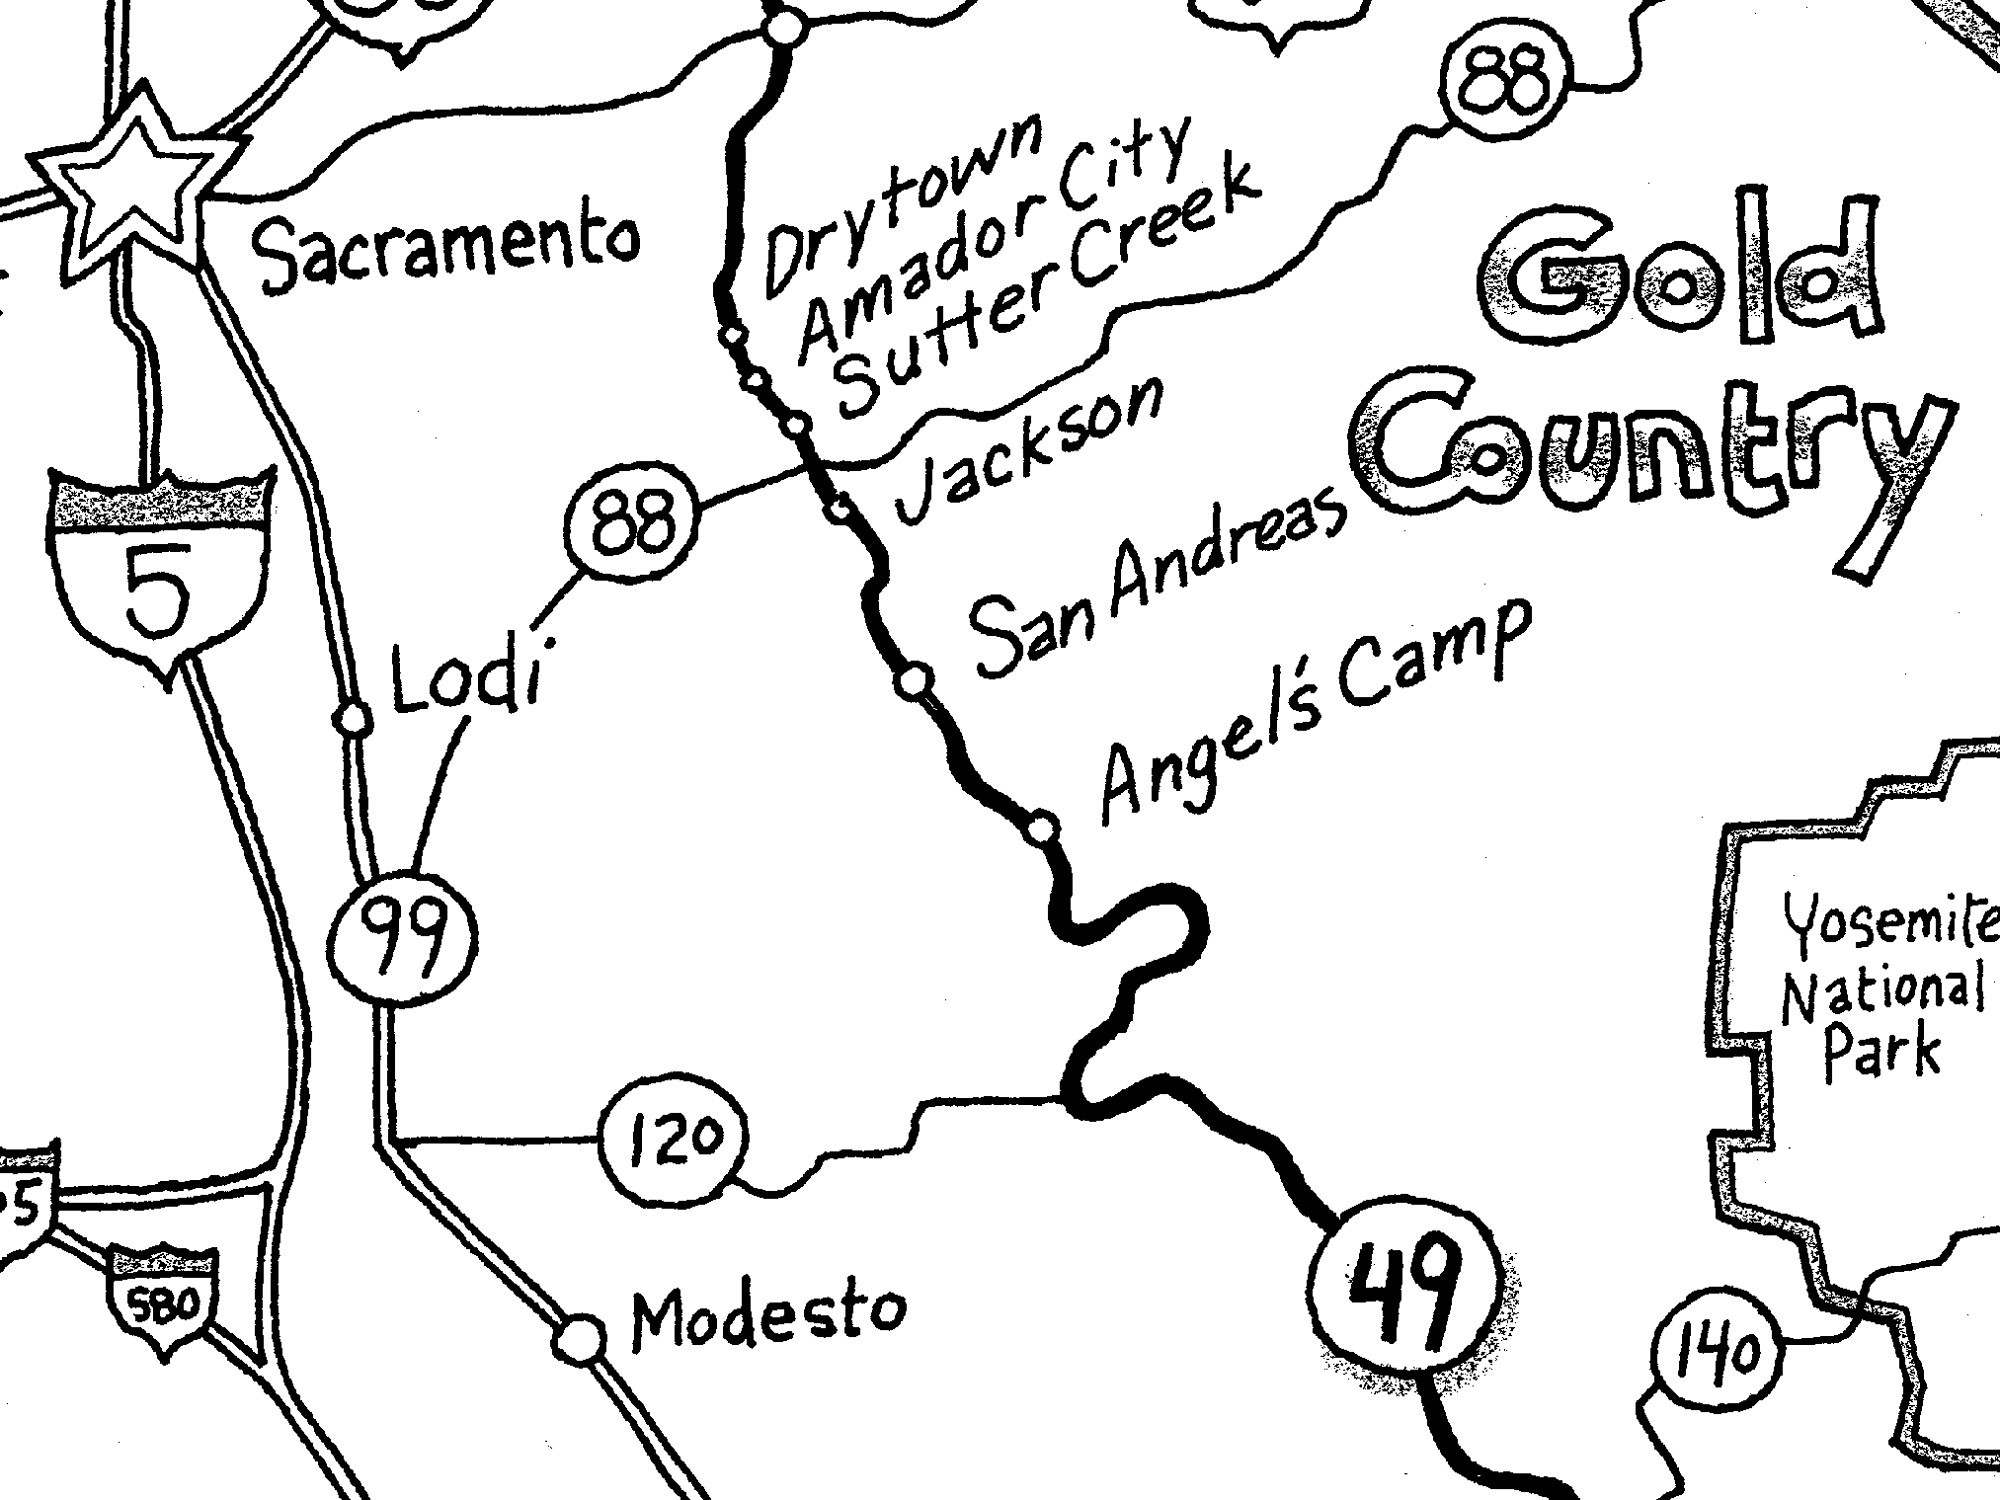 Touring California's Gold Country on State Route 49